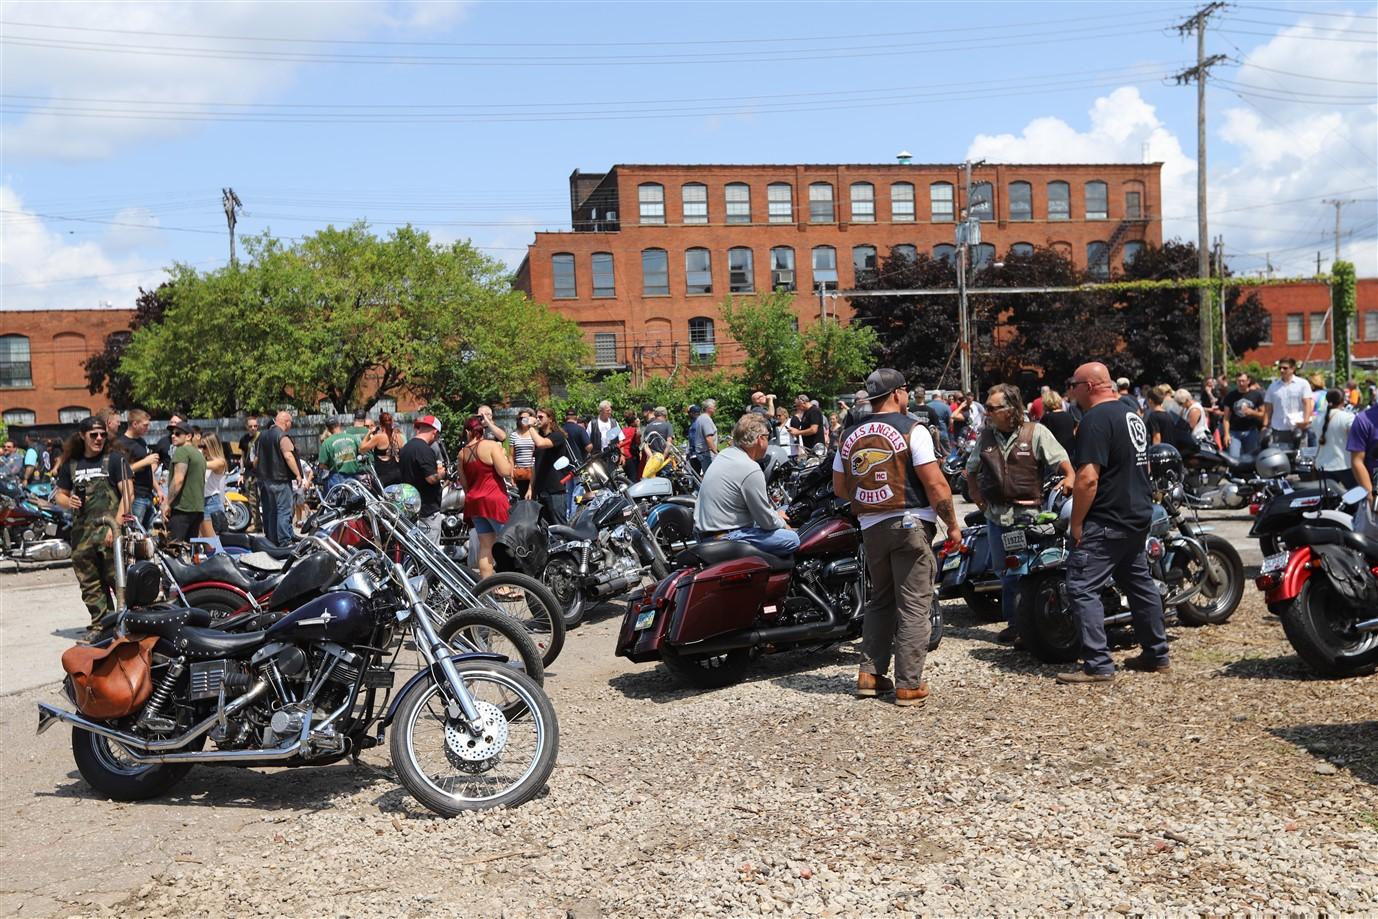 2018 07 28 196 Cleveland Fuel Motorcycle & Art Show.jpg